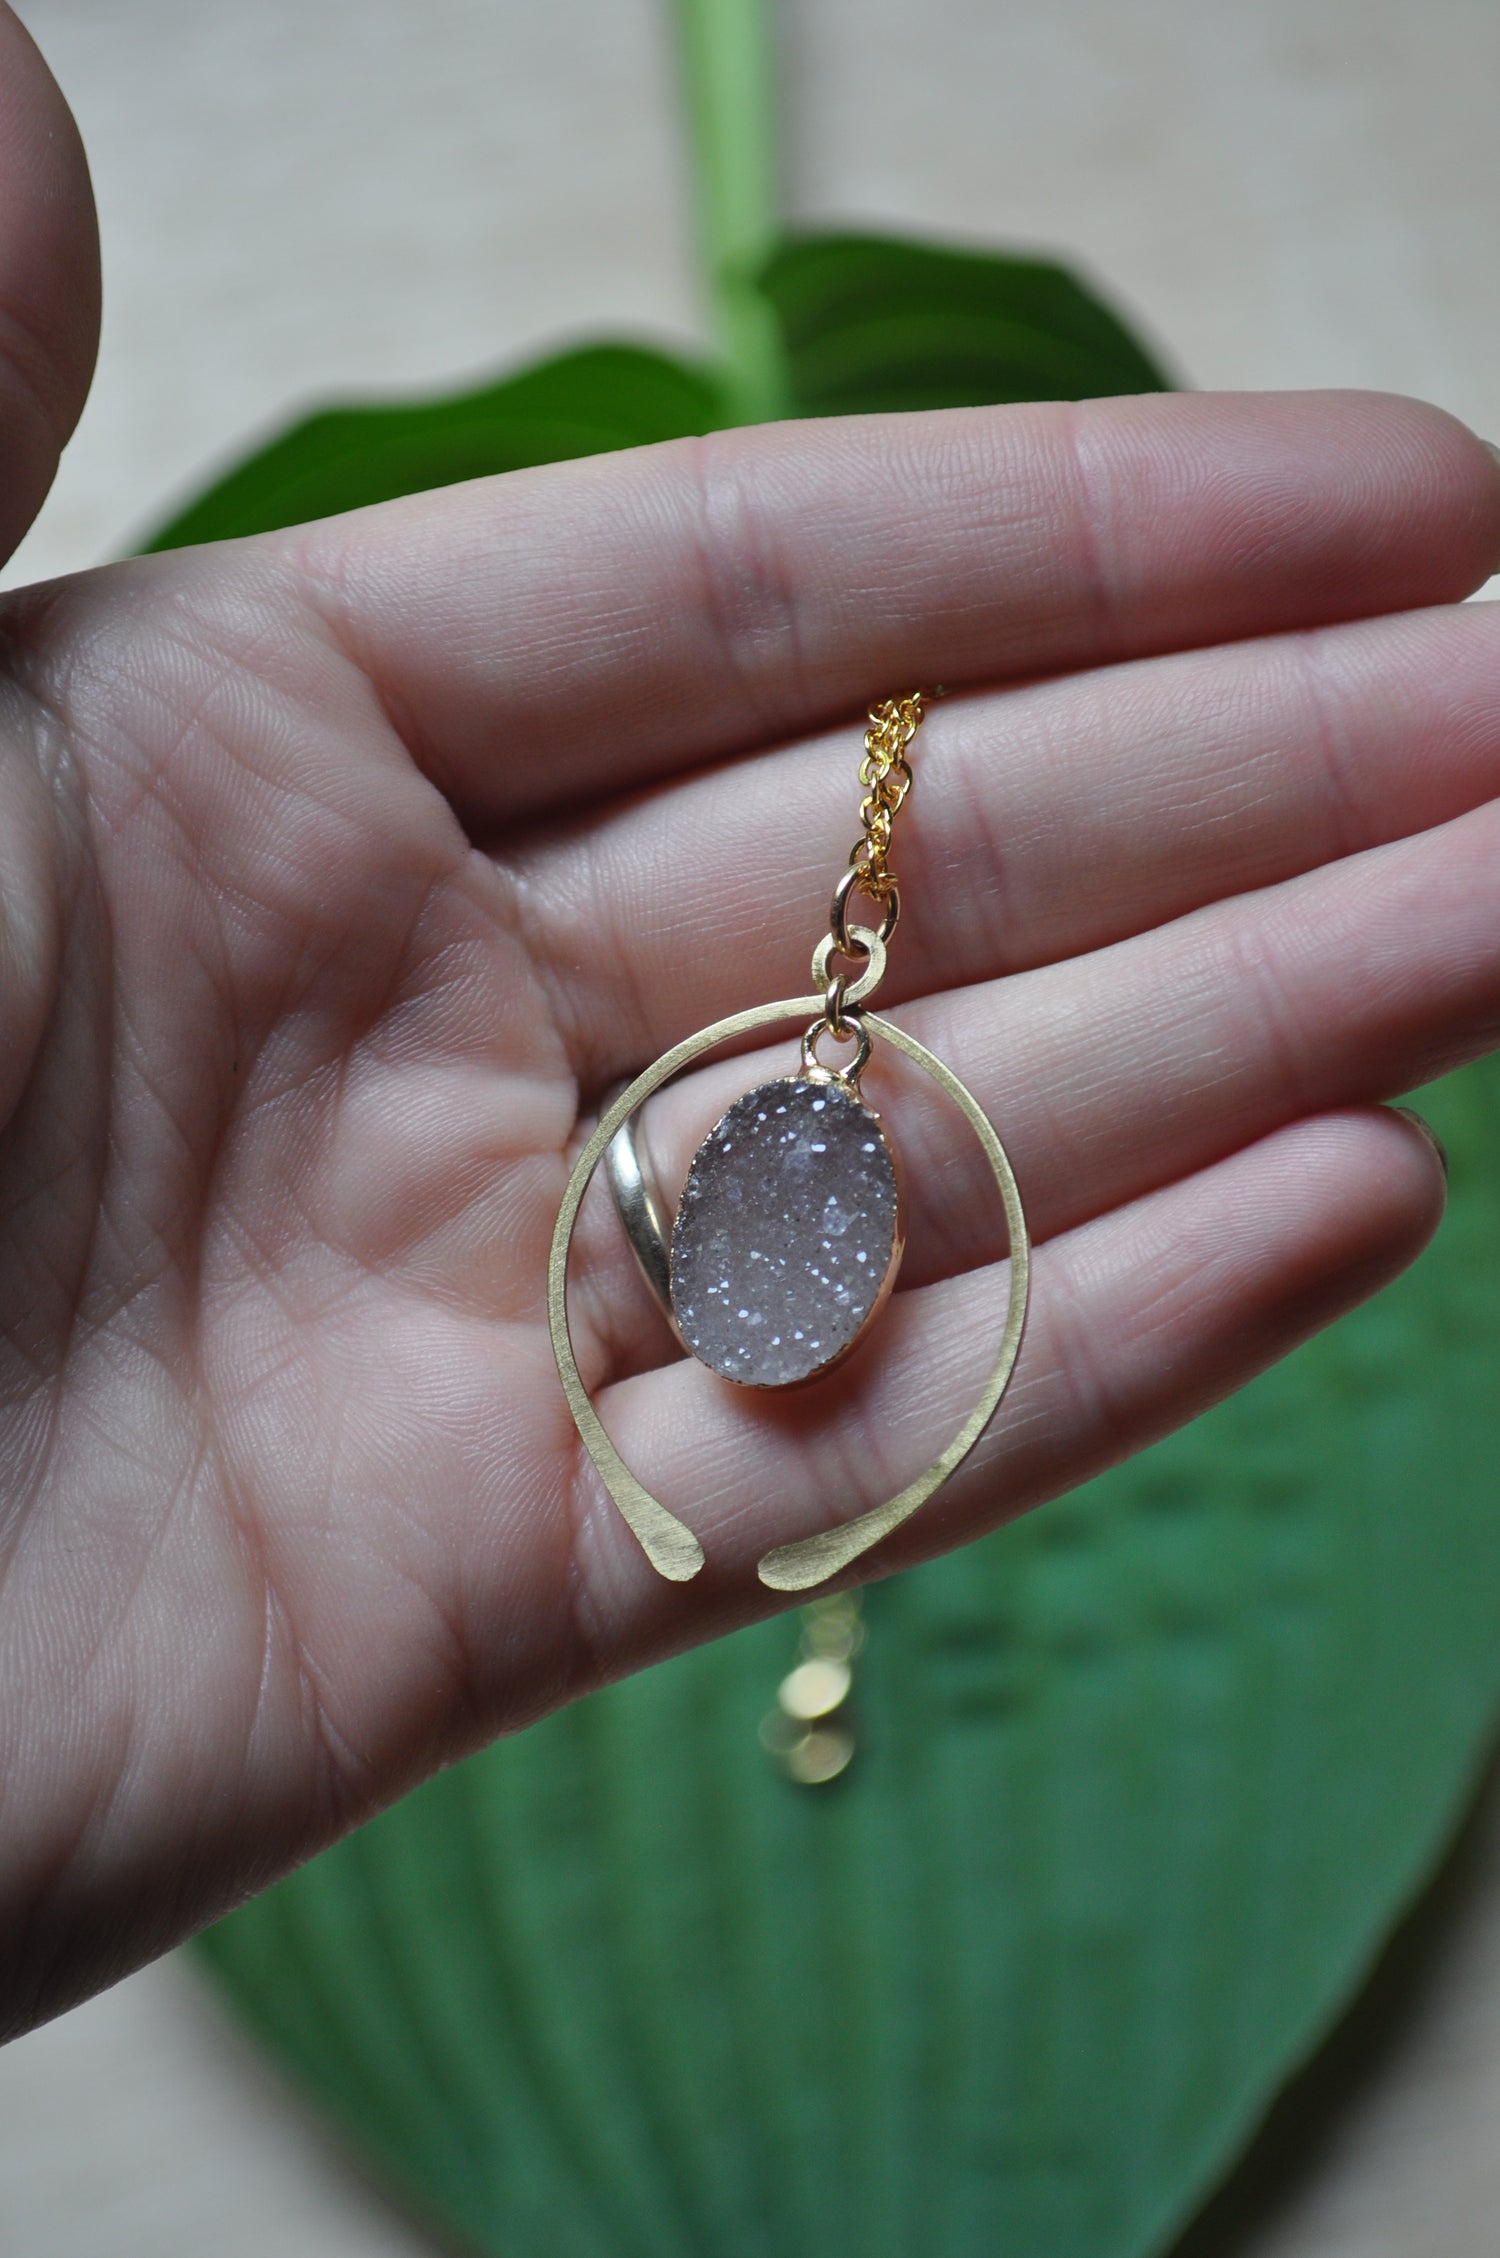 Image of The Whole World in His Hands Necklace - in Mauve Druzy